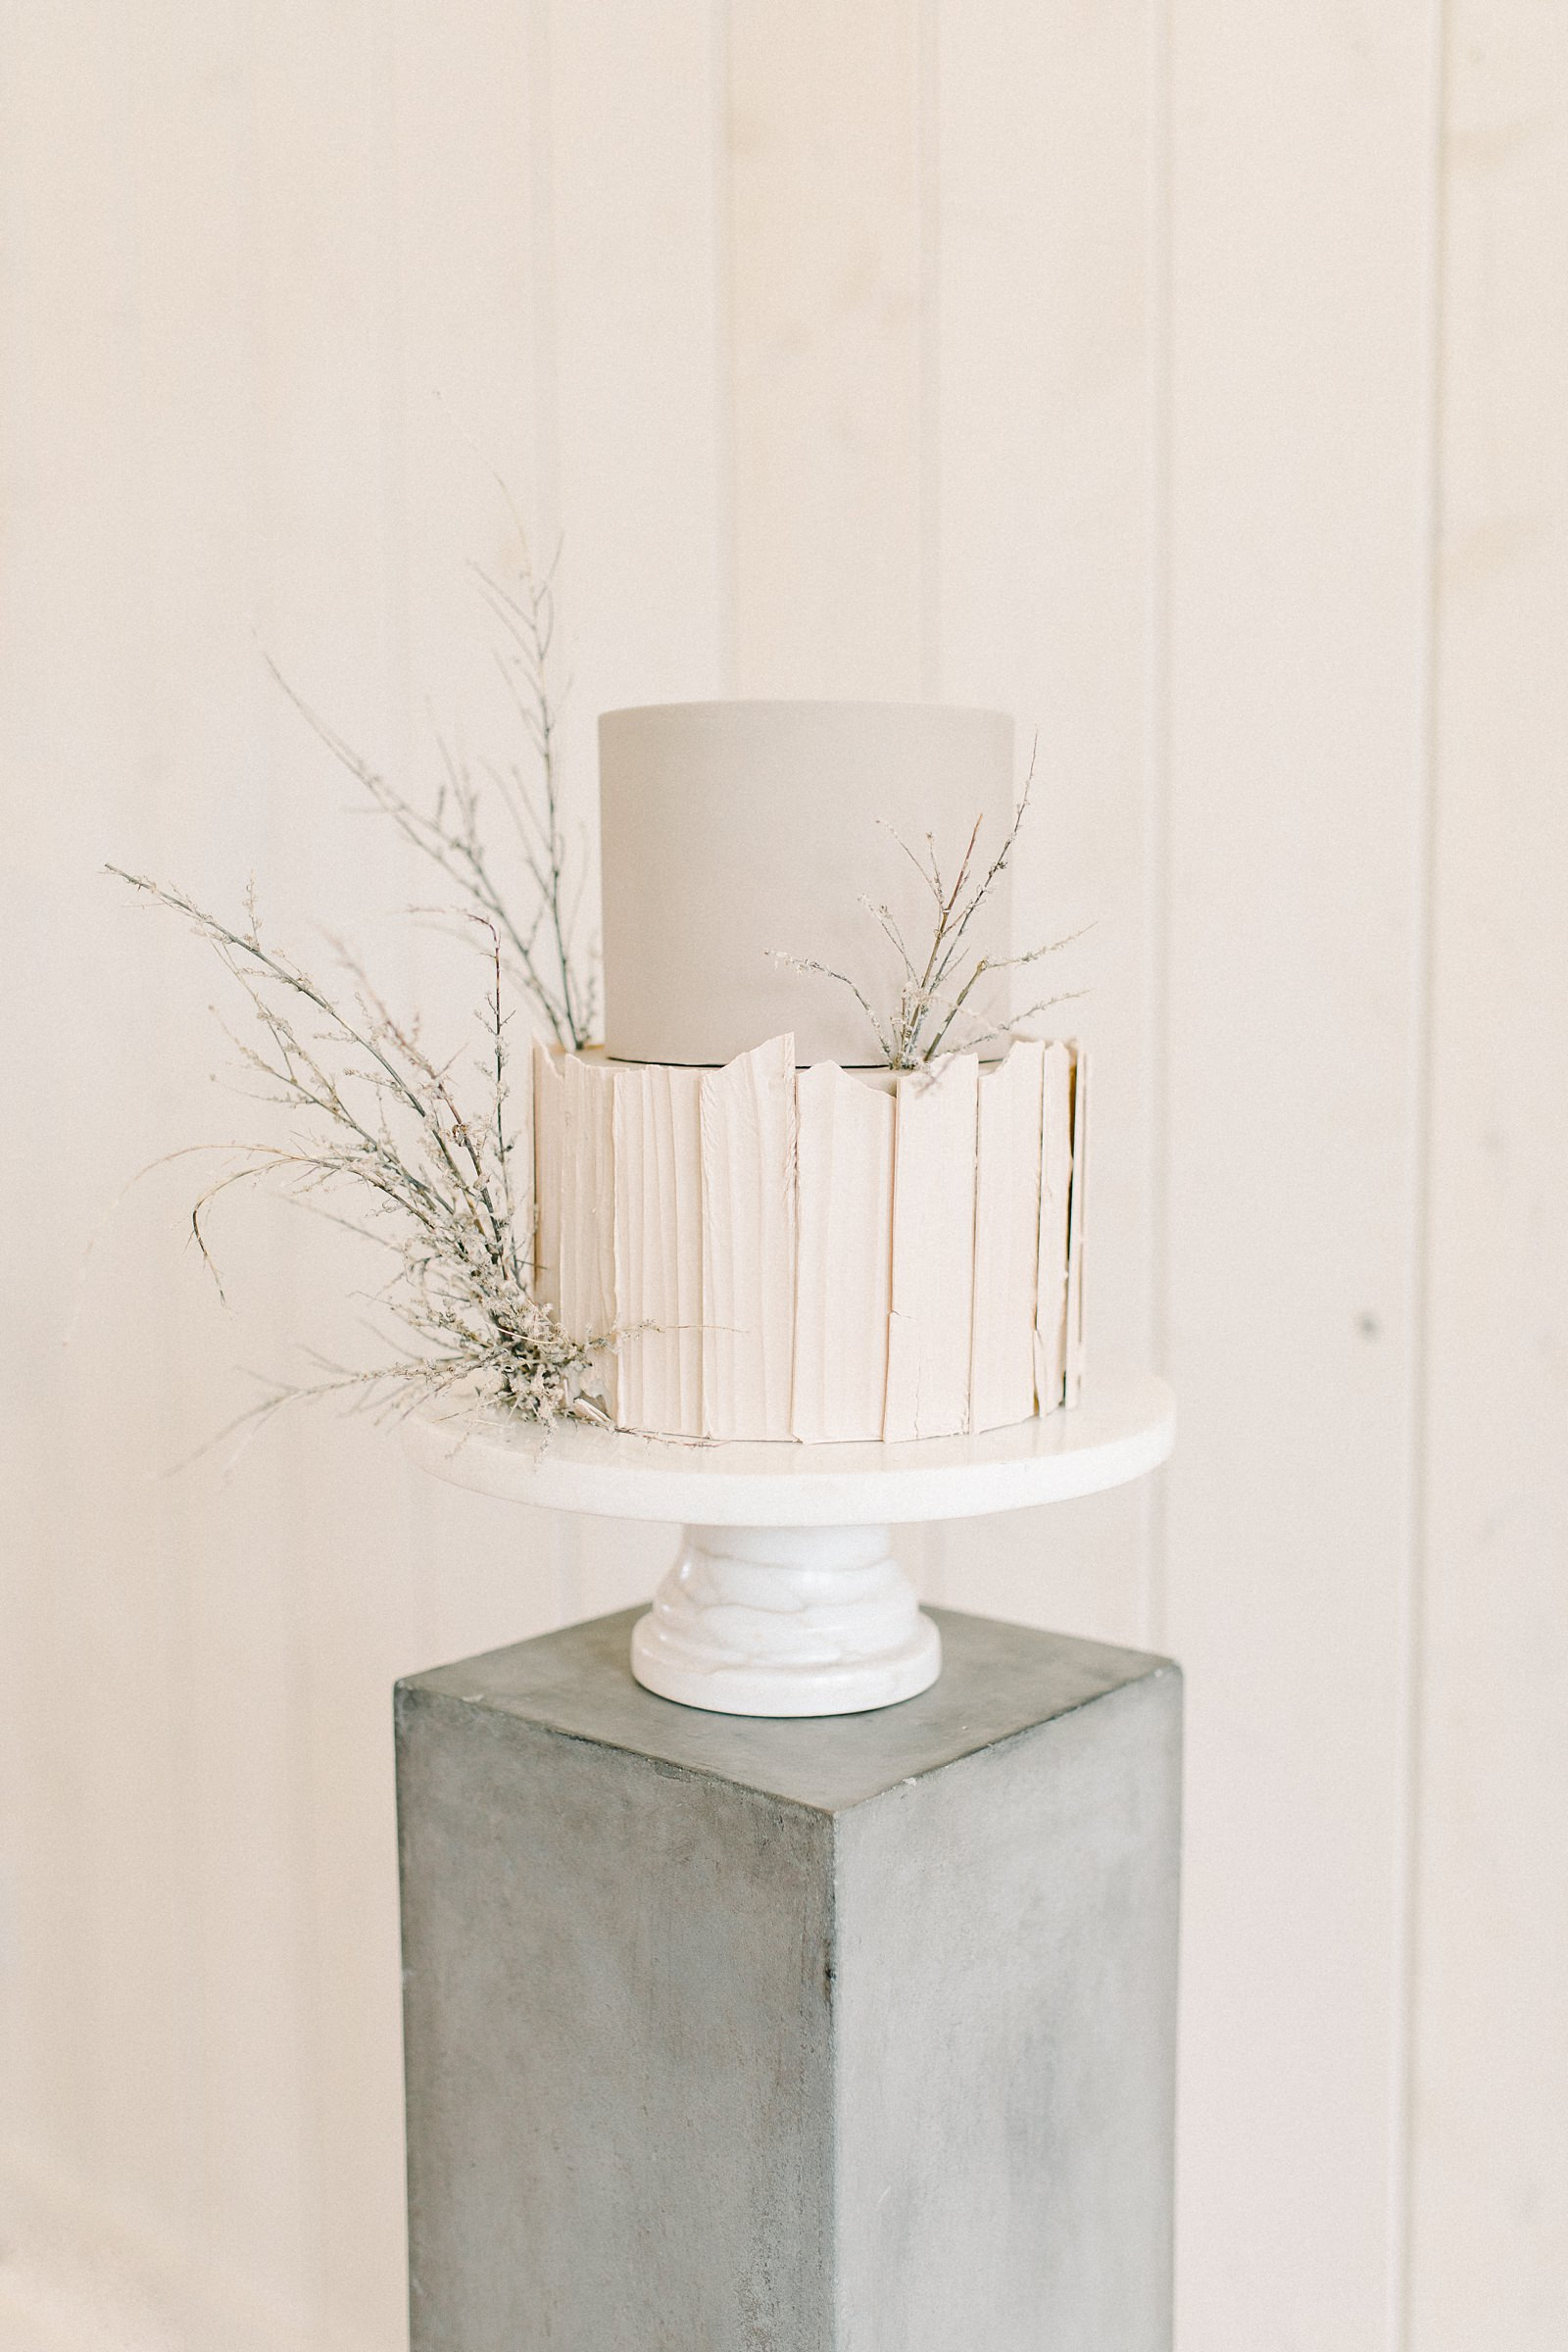 Heber Valley Natural Organic Wedding Inspiration at River Bottoms Ranch, Utah wedding film photography, two tier wedding cake gray and beige with white chocolate layers